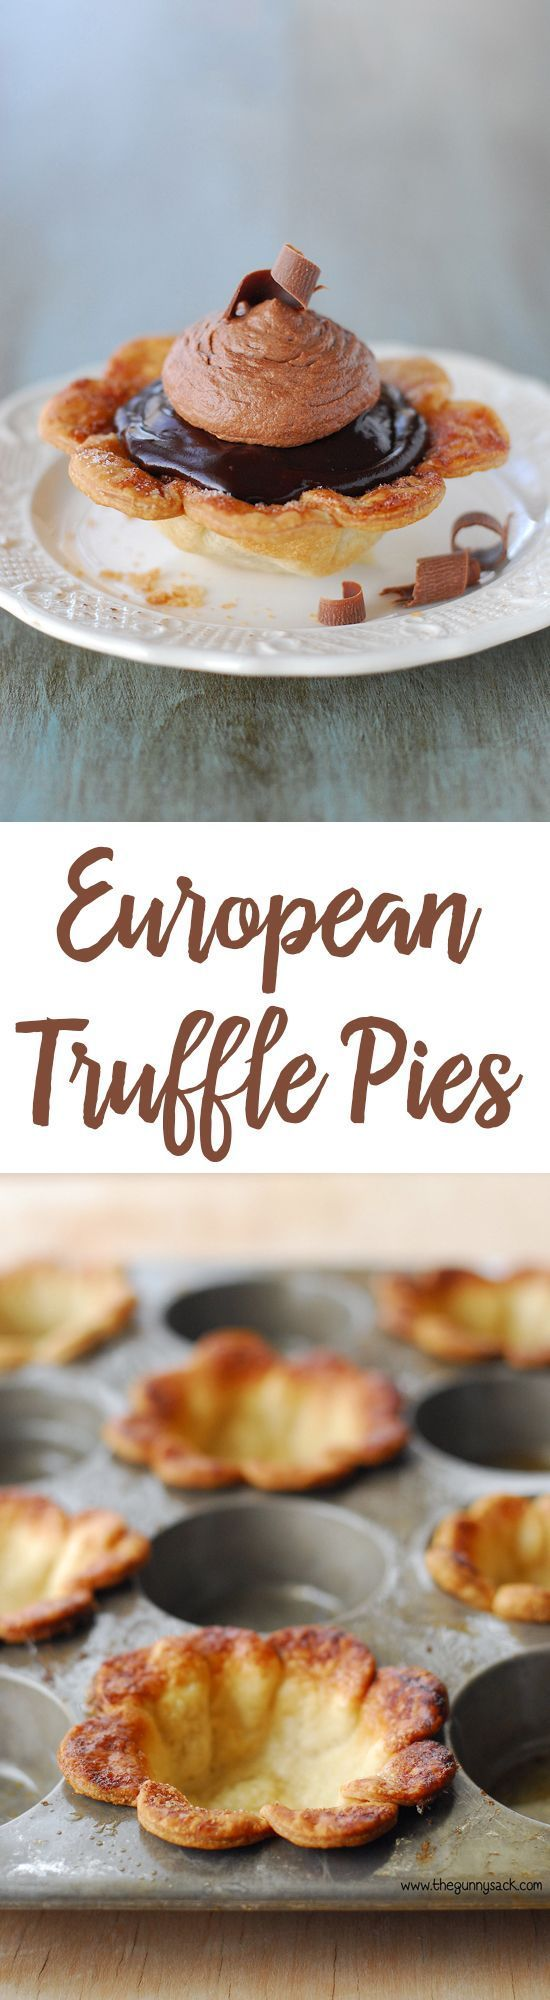 European Truffle Pies are mini pies with triple the chocolate! This chocolate pie recipe is perfect for the chocolate lovers in your life. Make them for your loved ones for Valentine's Day!